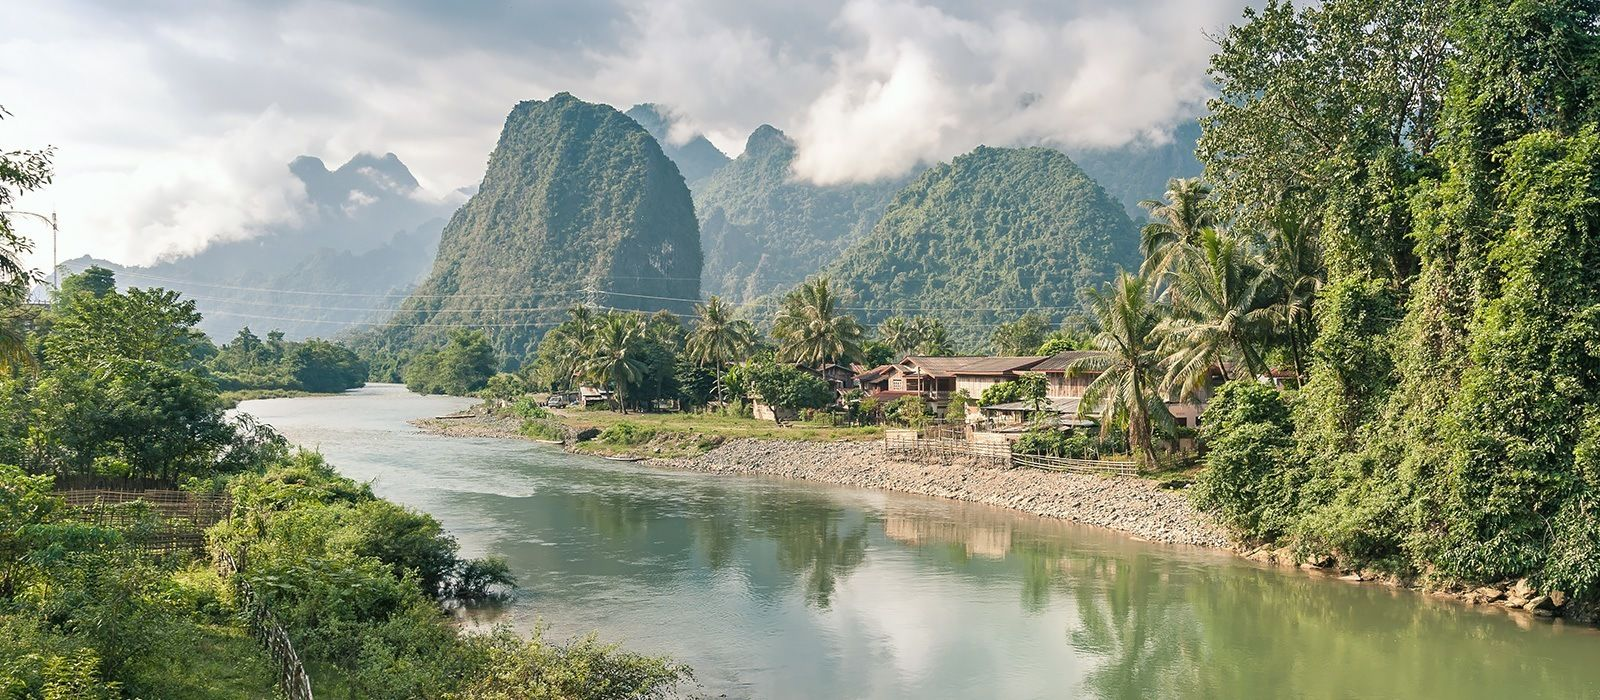 Live Laos: From Monks to Mekong Tour Trip 2